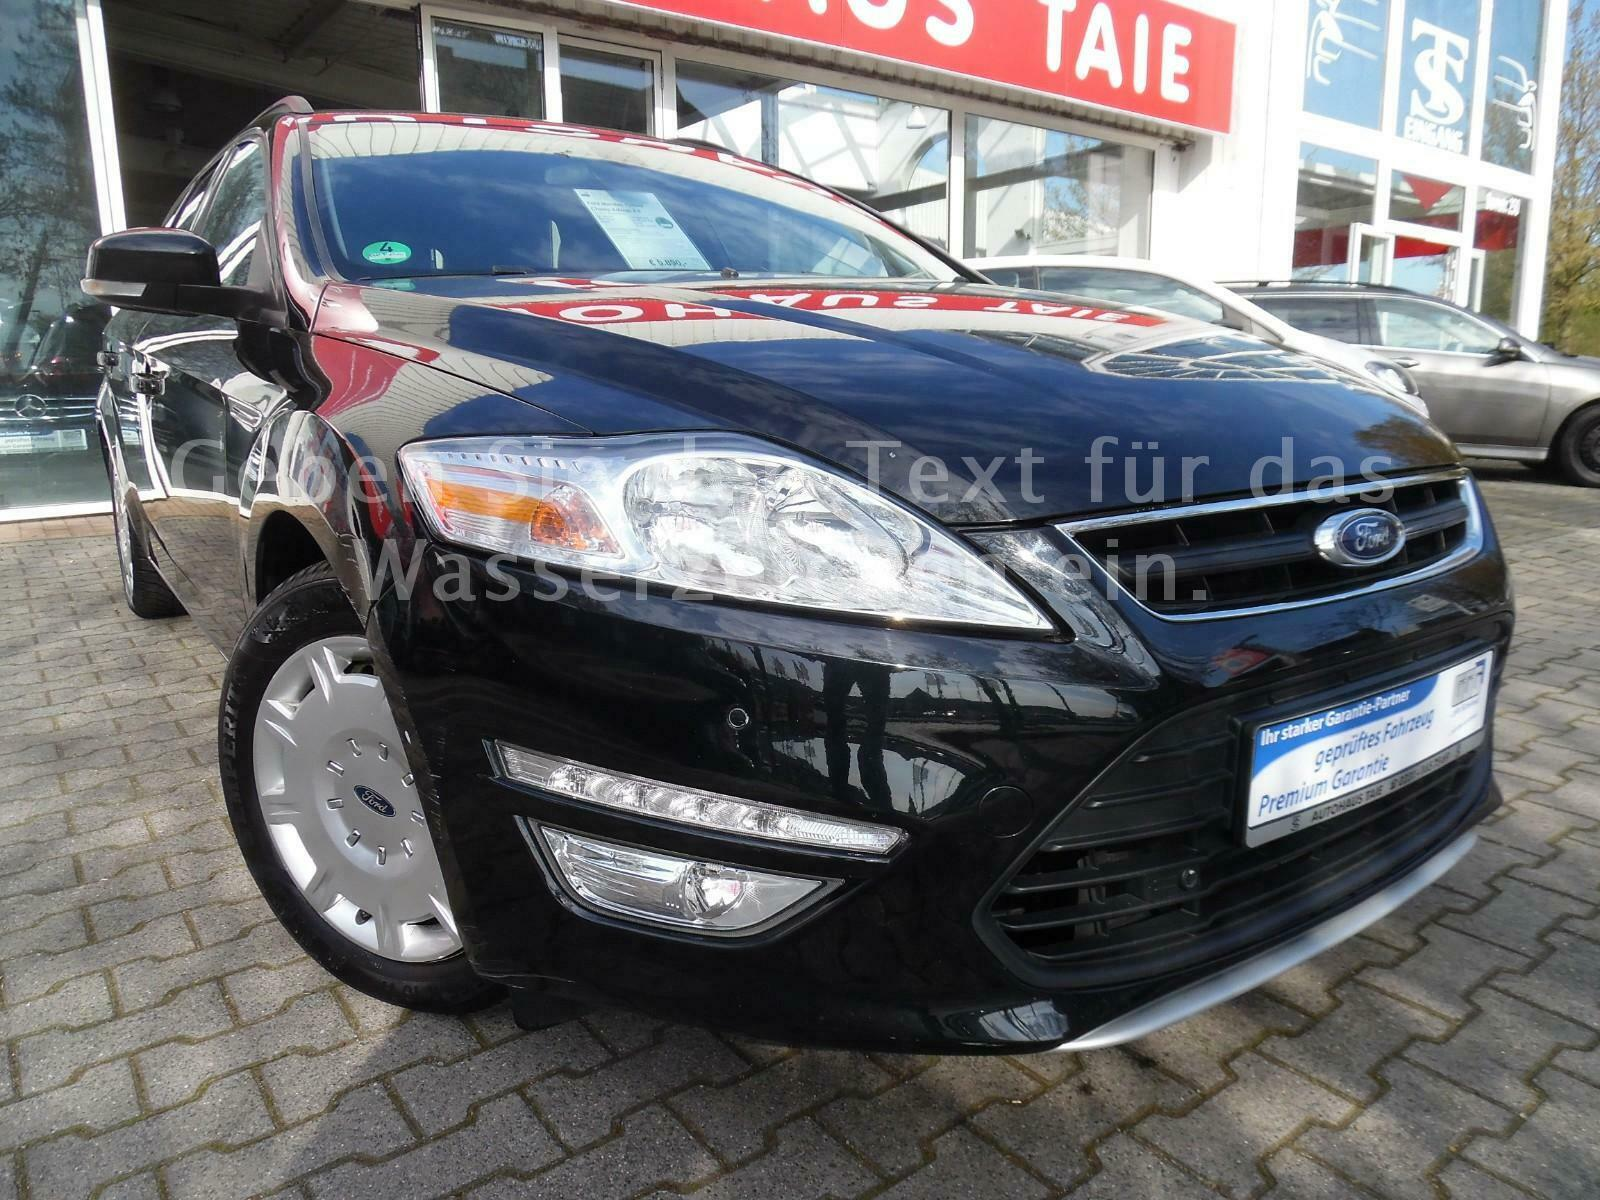 FORD Mondeo Turnier Champ Edition 2.0 TDCI,Navi,Lede